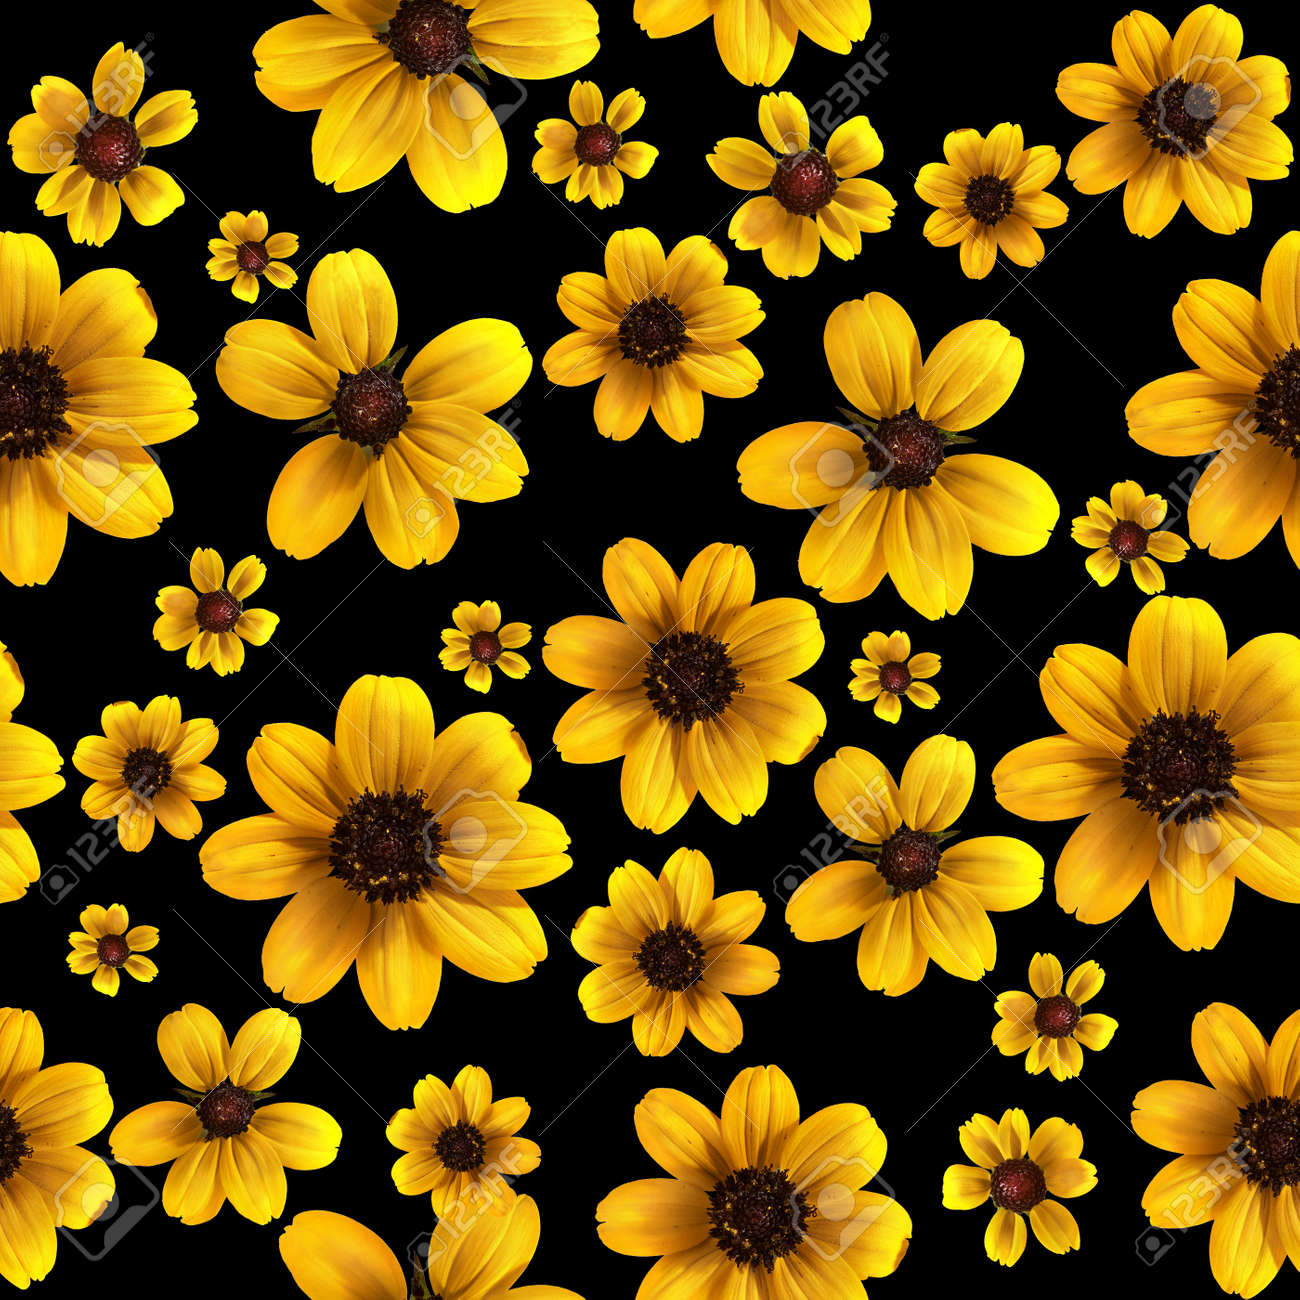 Images Of Yellow Flowers With Black Background Shareimages